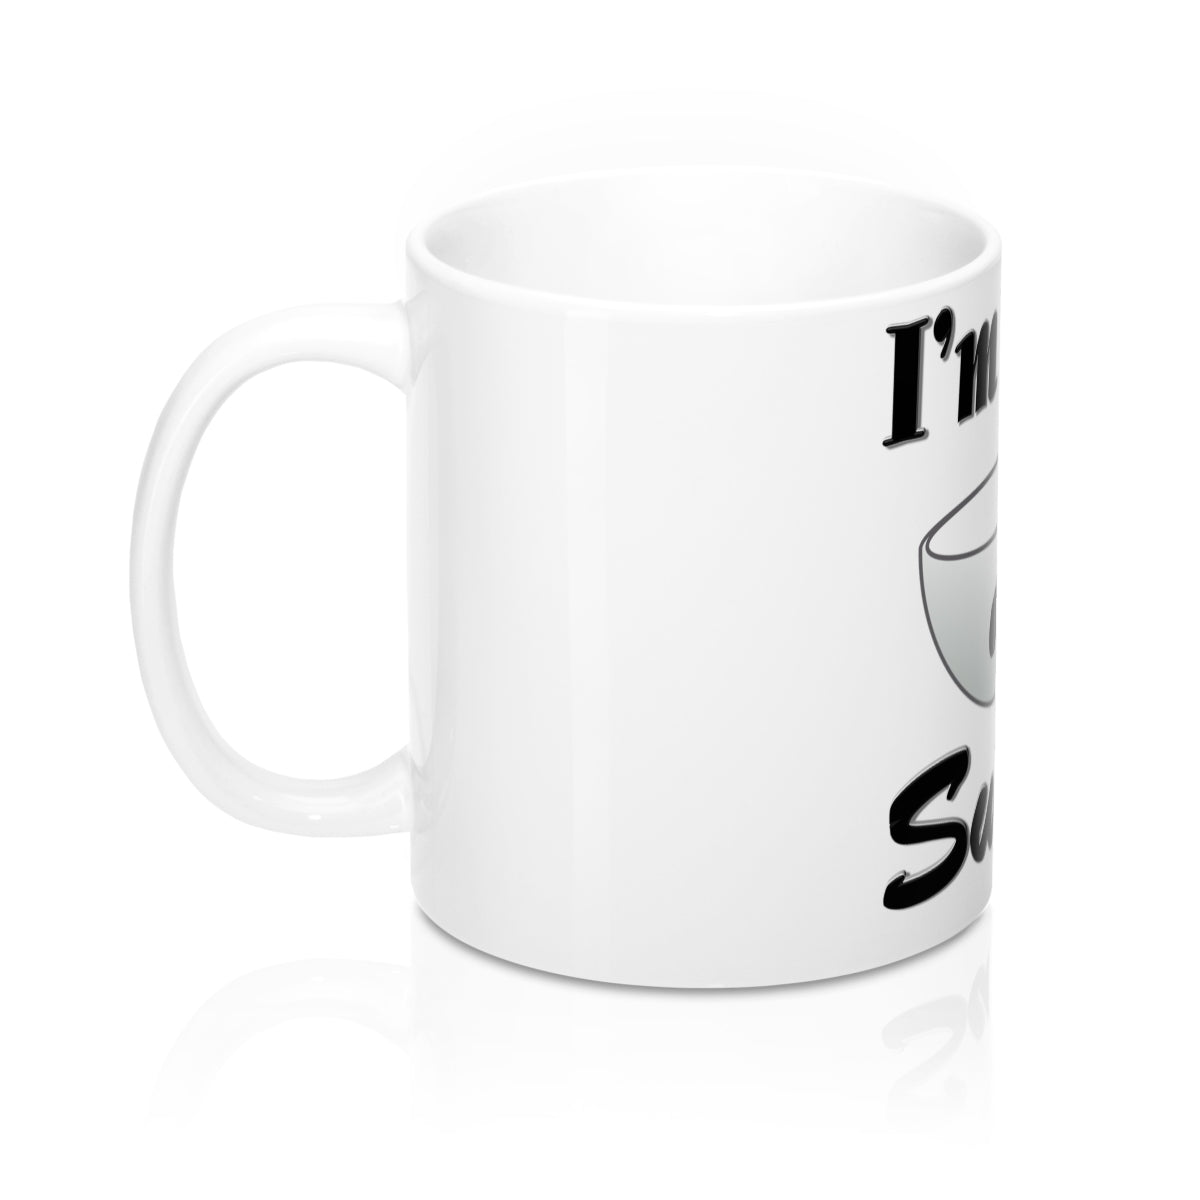 Sassy & Swag Collections - I'm Her Cup of Swag Mug 11oz